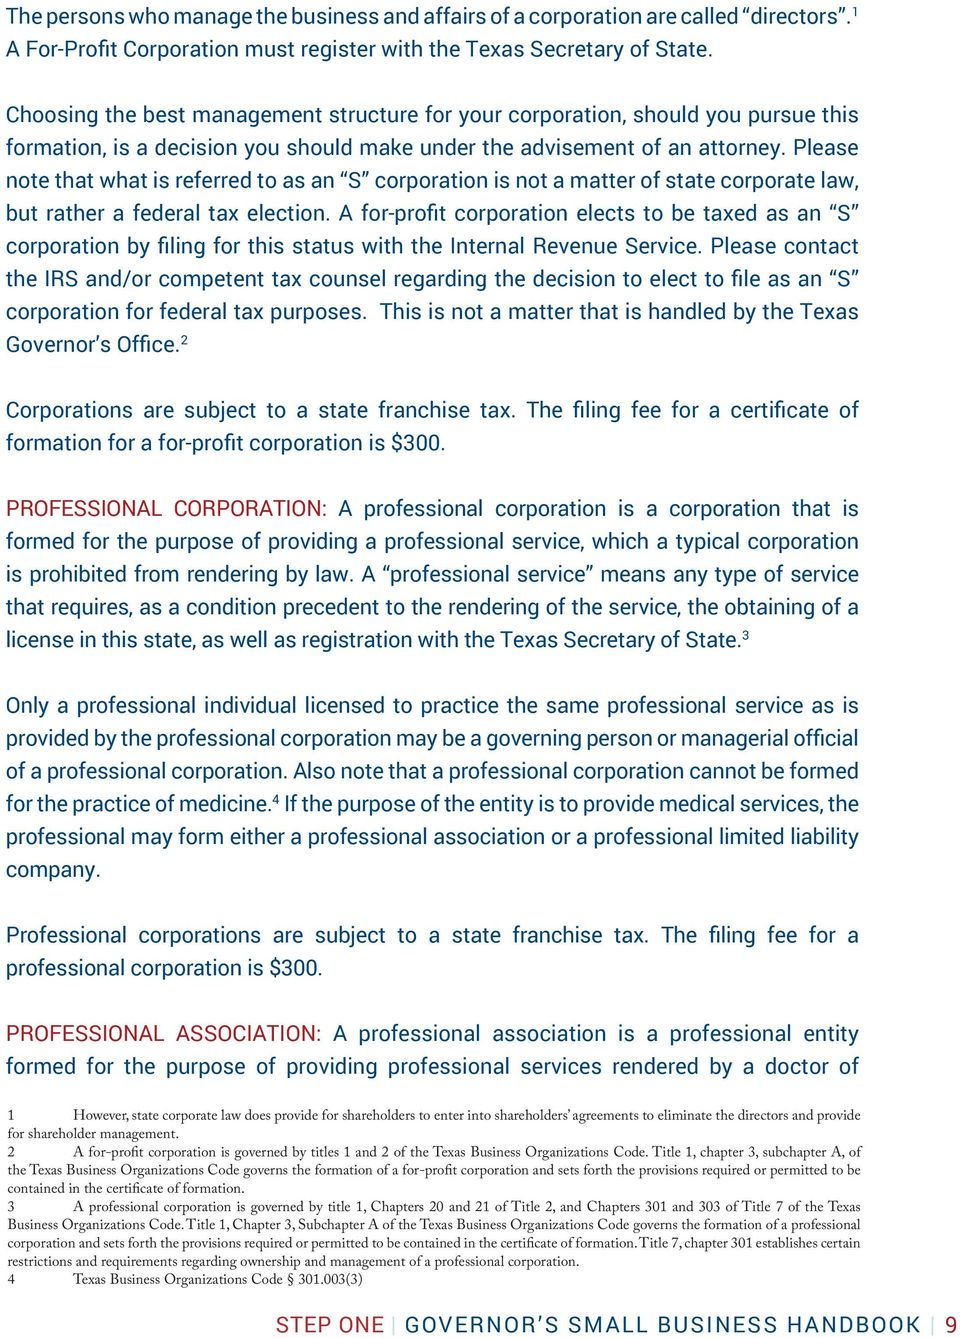 Please note that what is referred to as an S corporation is not a matter of state corporate law, but rather a federal tax election.